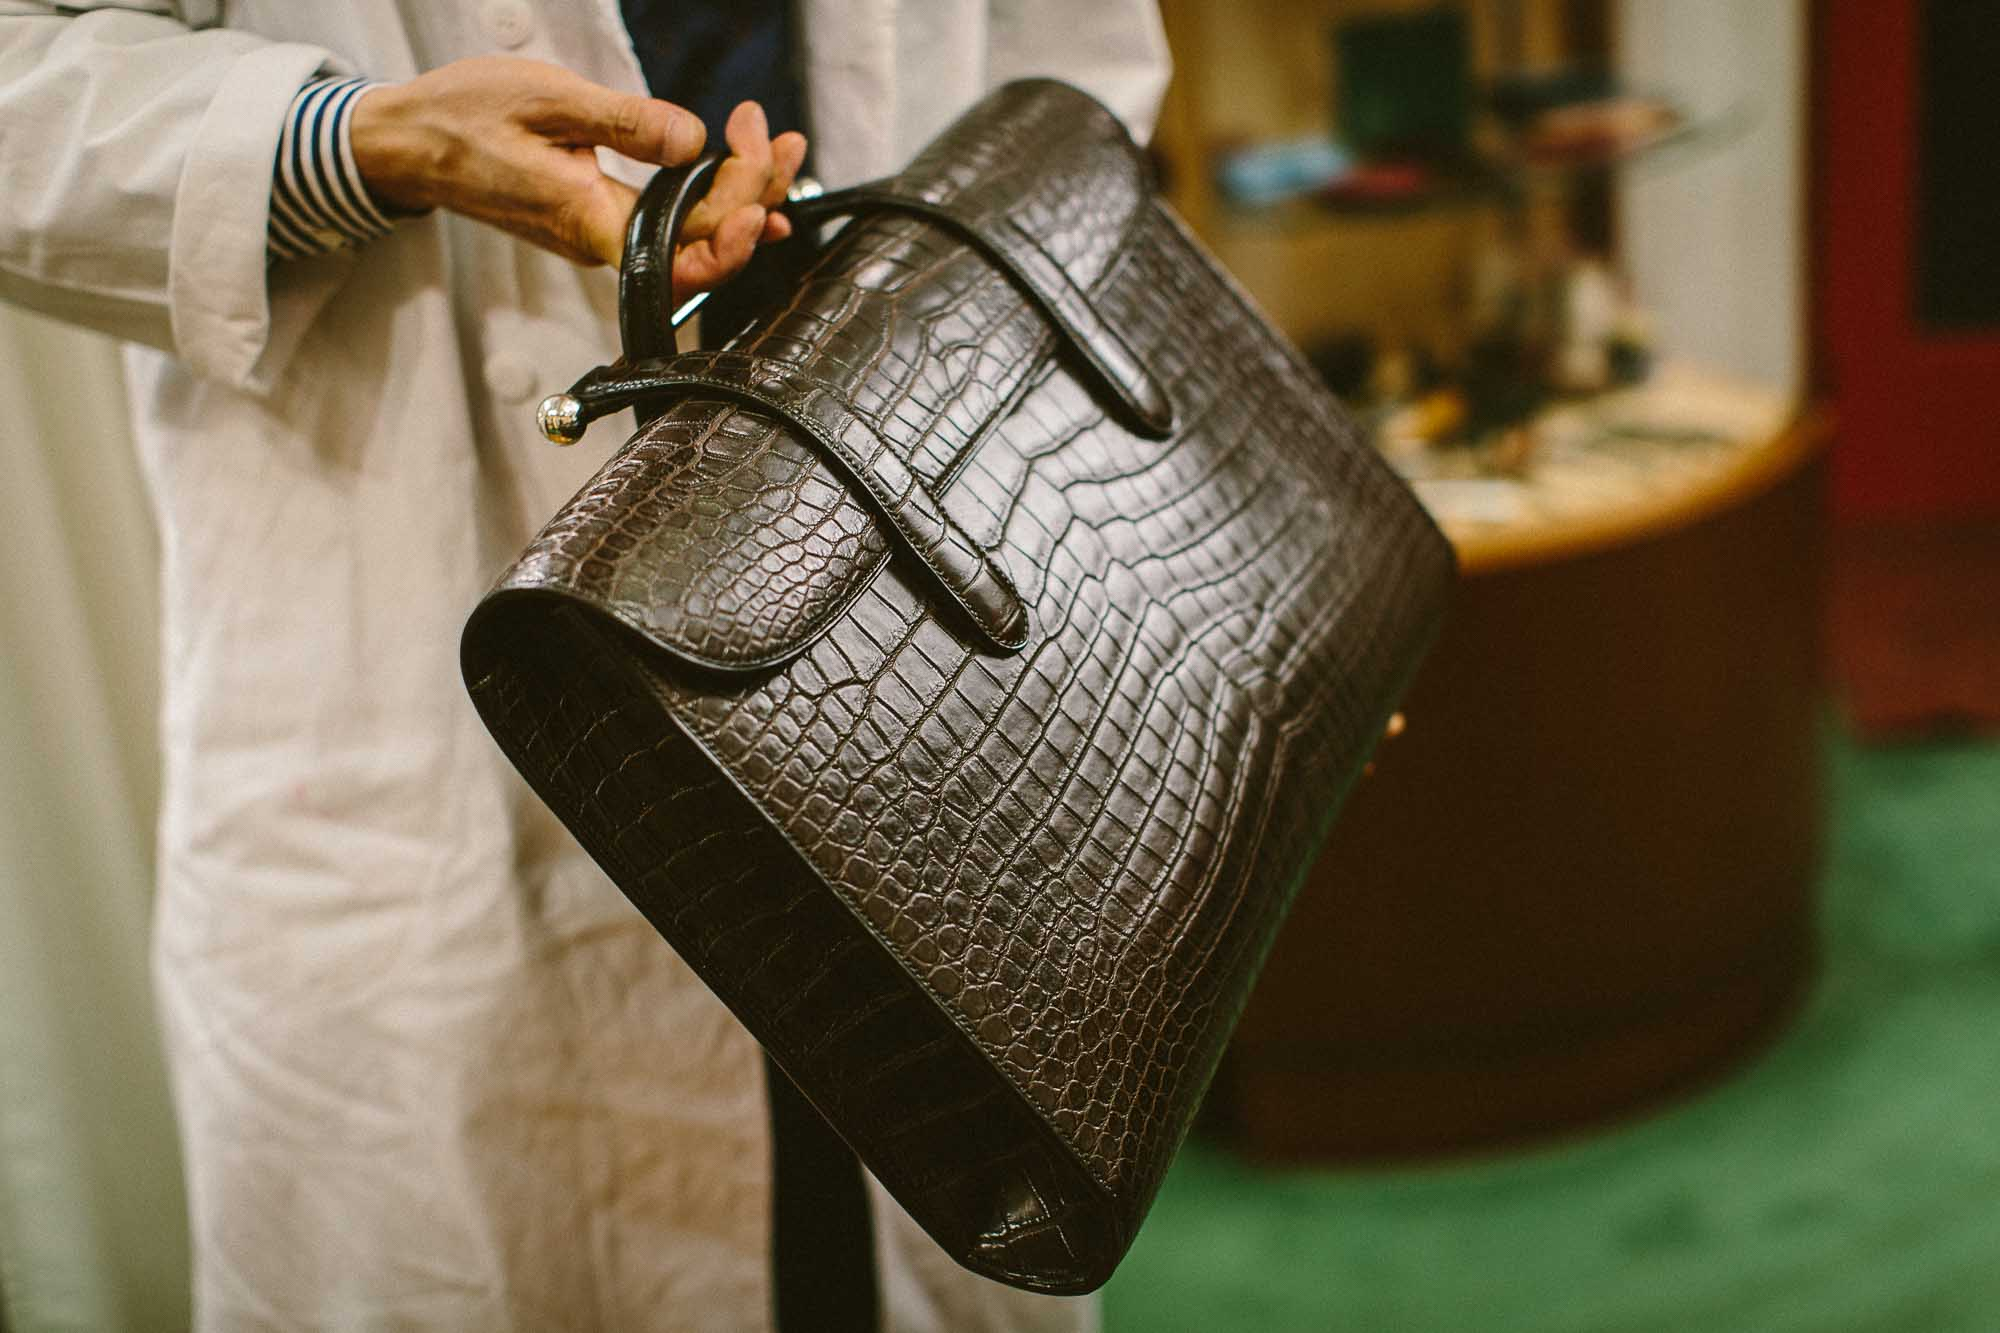 Ortus bespoke leather goods, Tokyo – Permanent Style